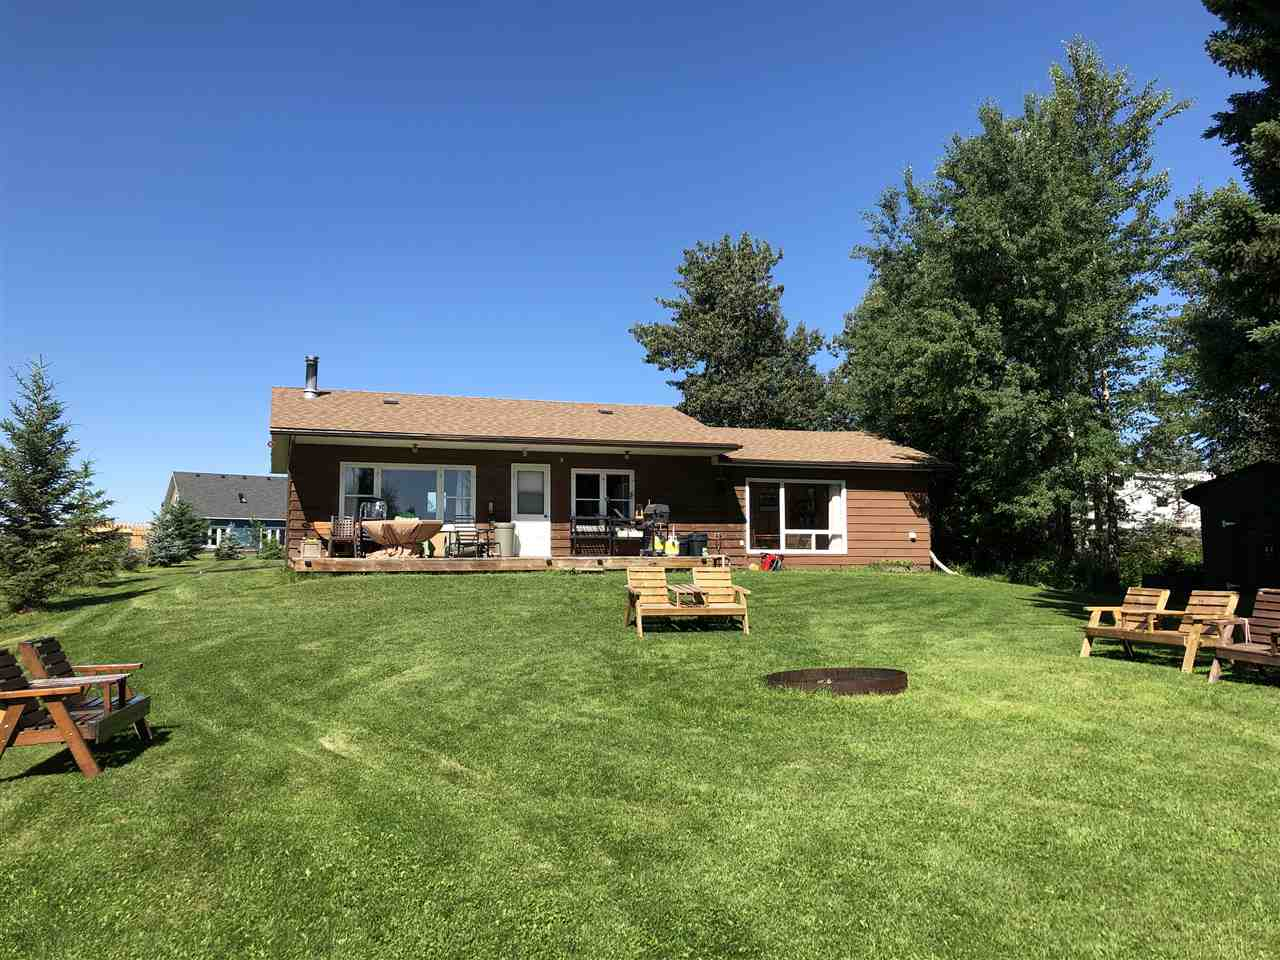 217 62002 Twp Rd 462a - Heritage Estates, Rural Wetaskiwin County, MLS® # E4158679